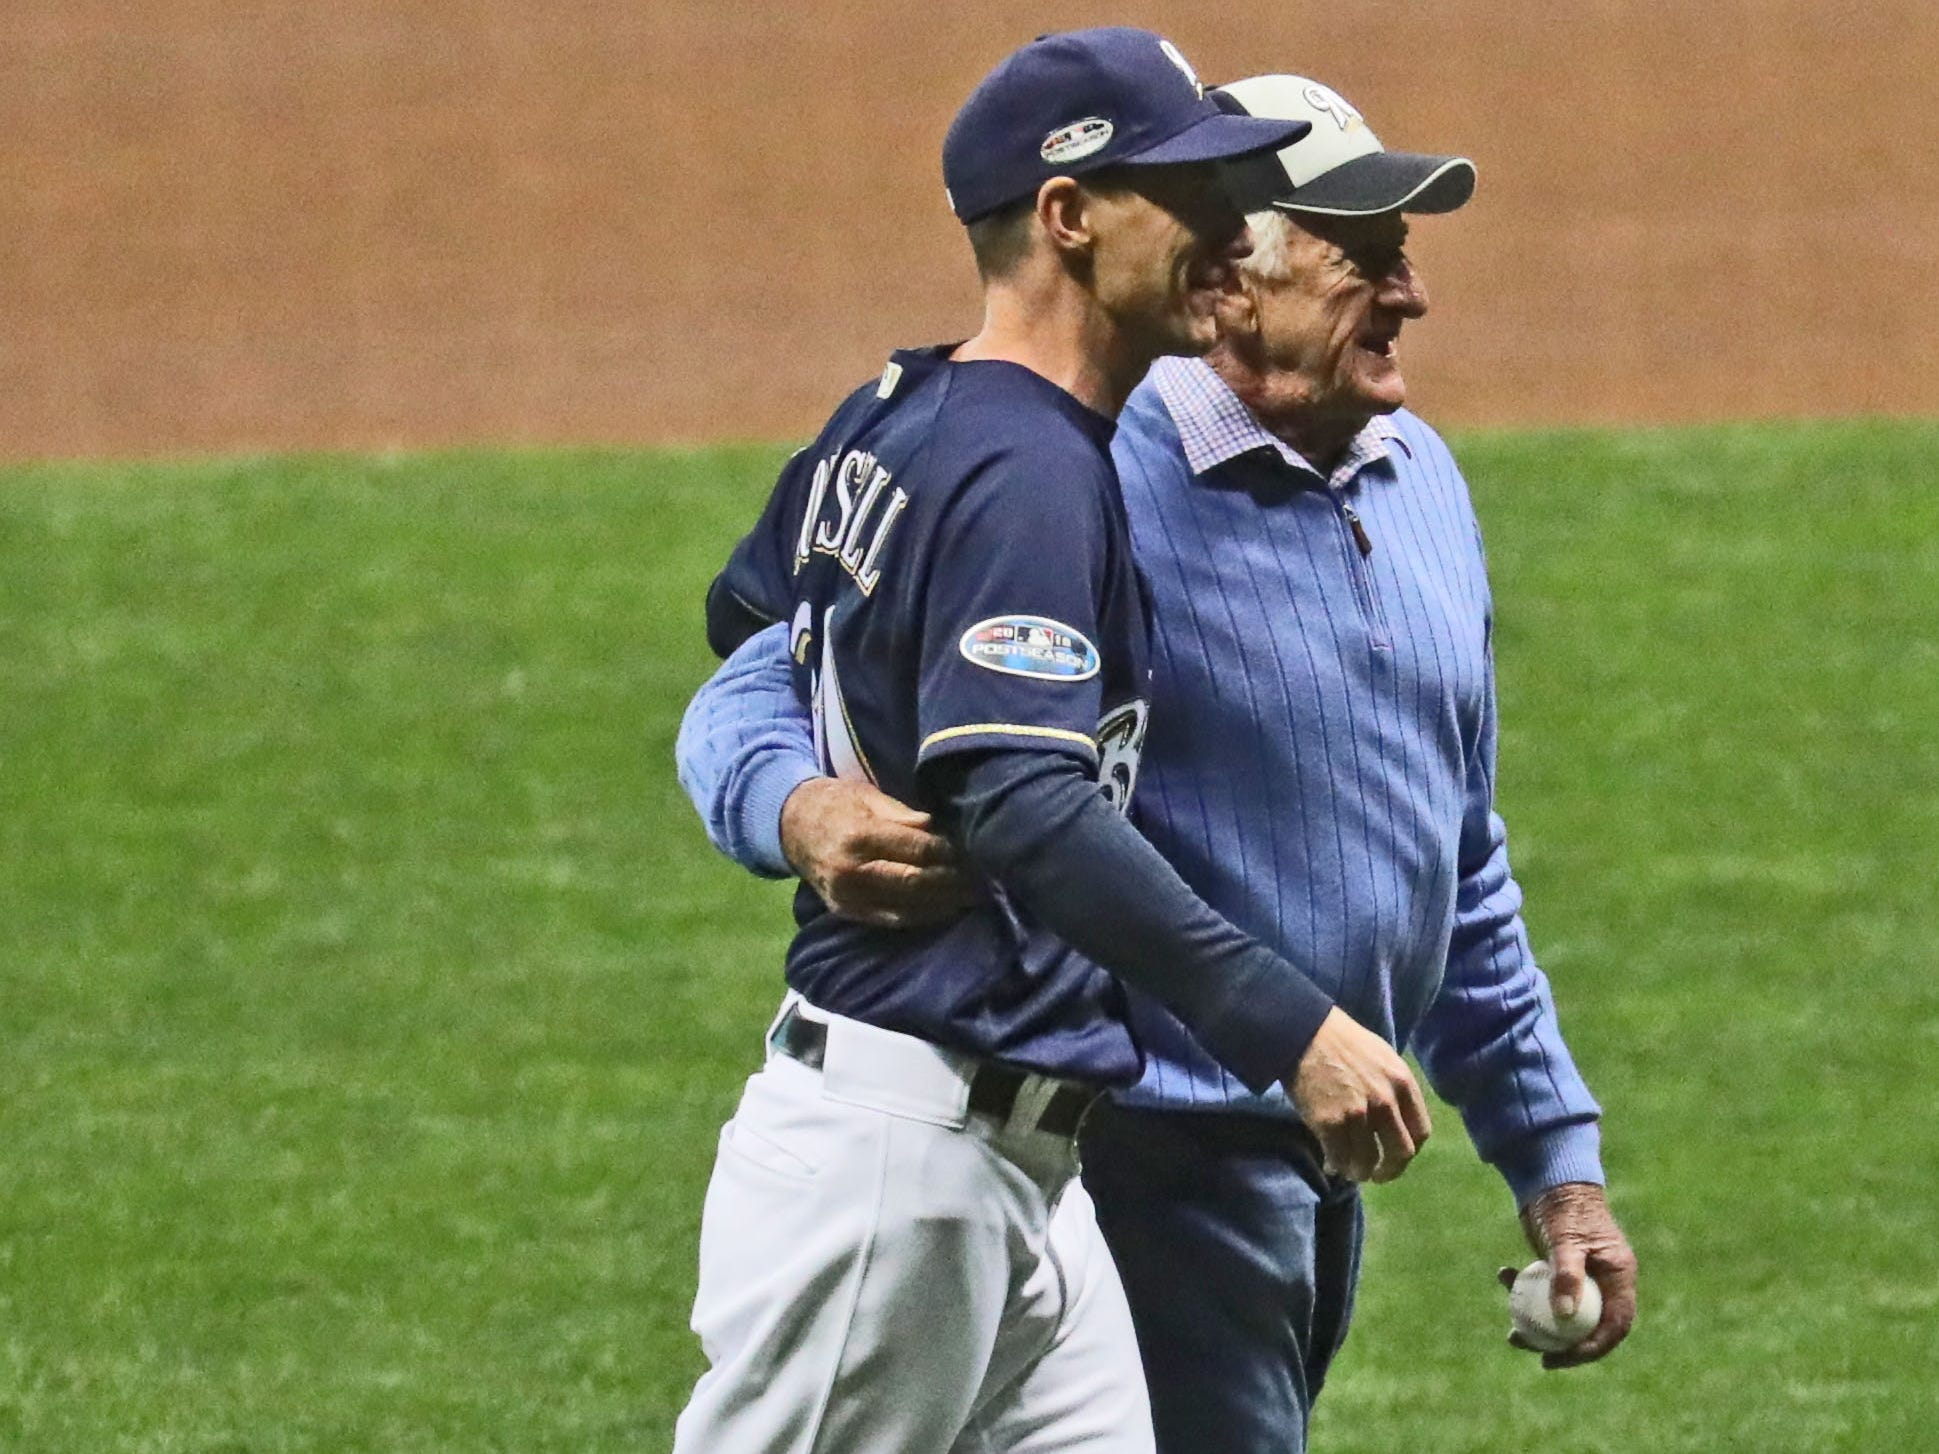 Brewers manager Craig Counsell walks Bob Uecker back to the dugout after Uecker threw out the first pitch.